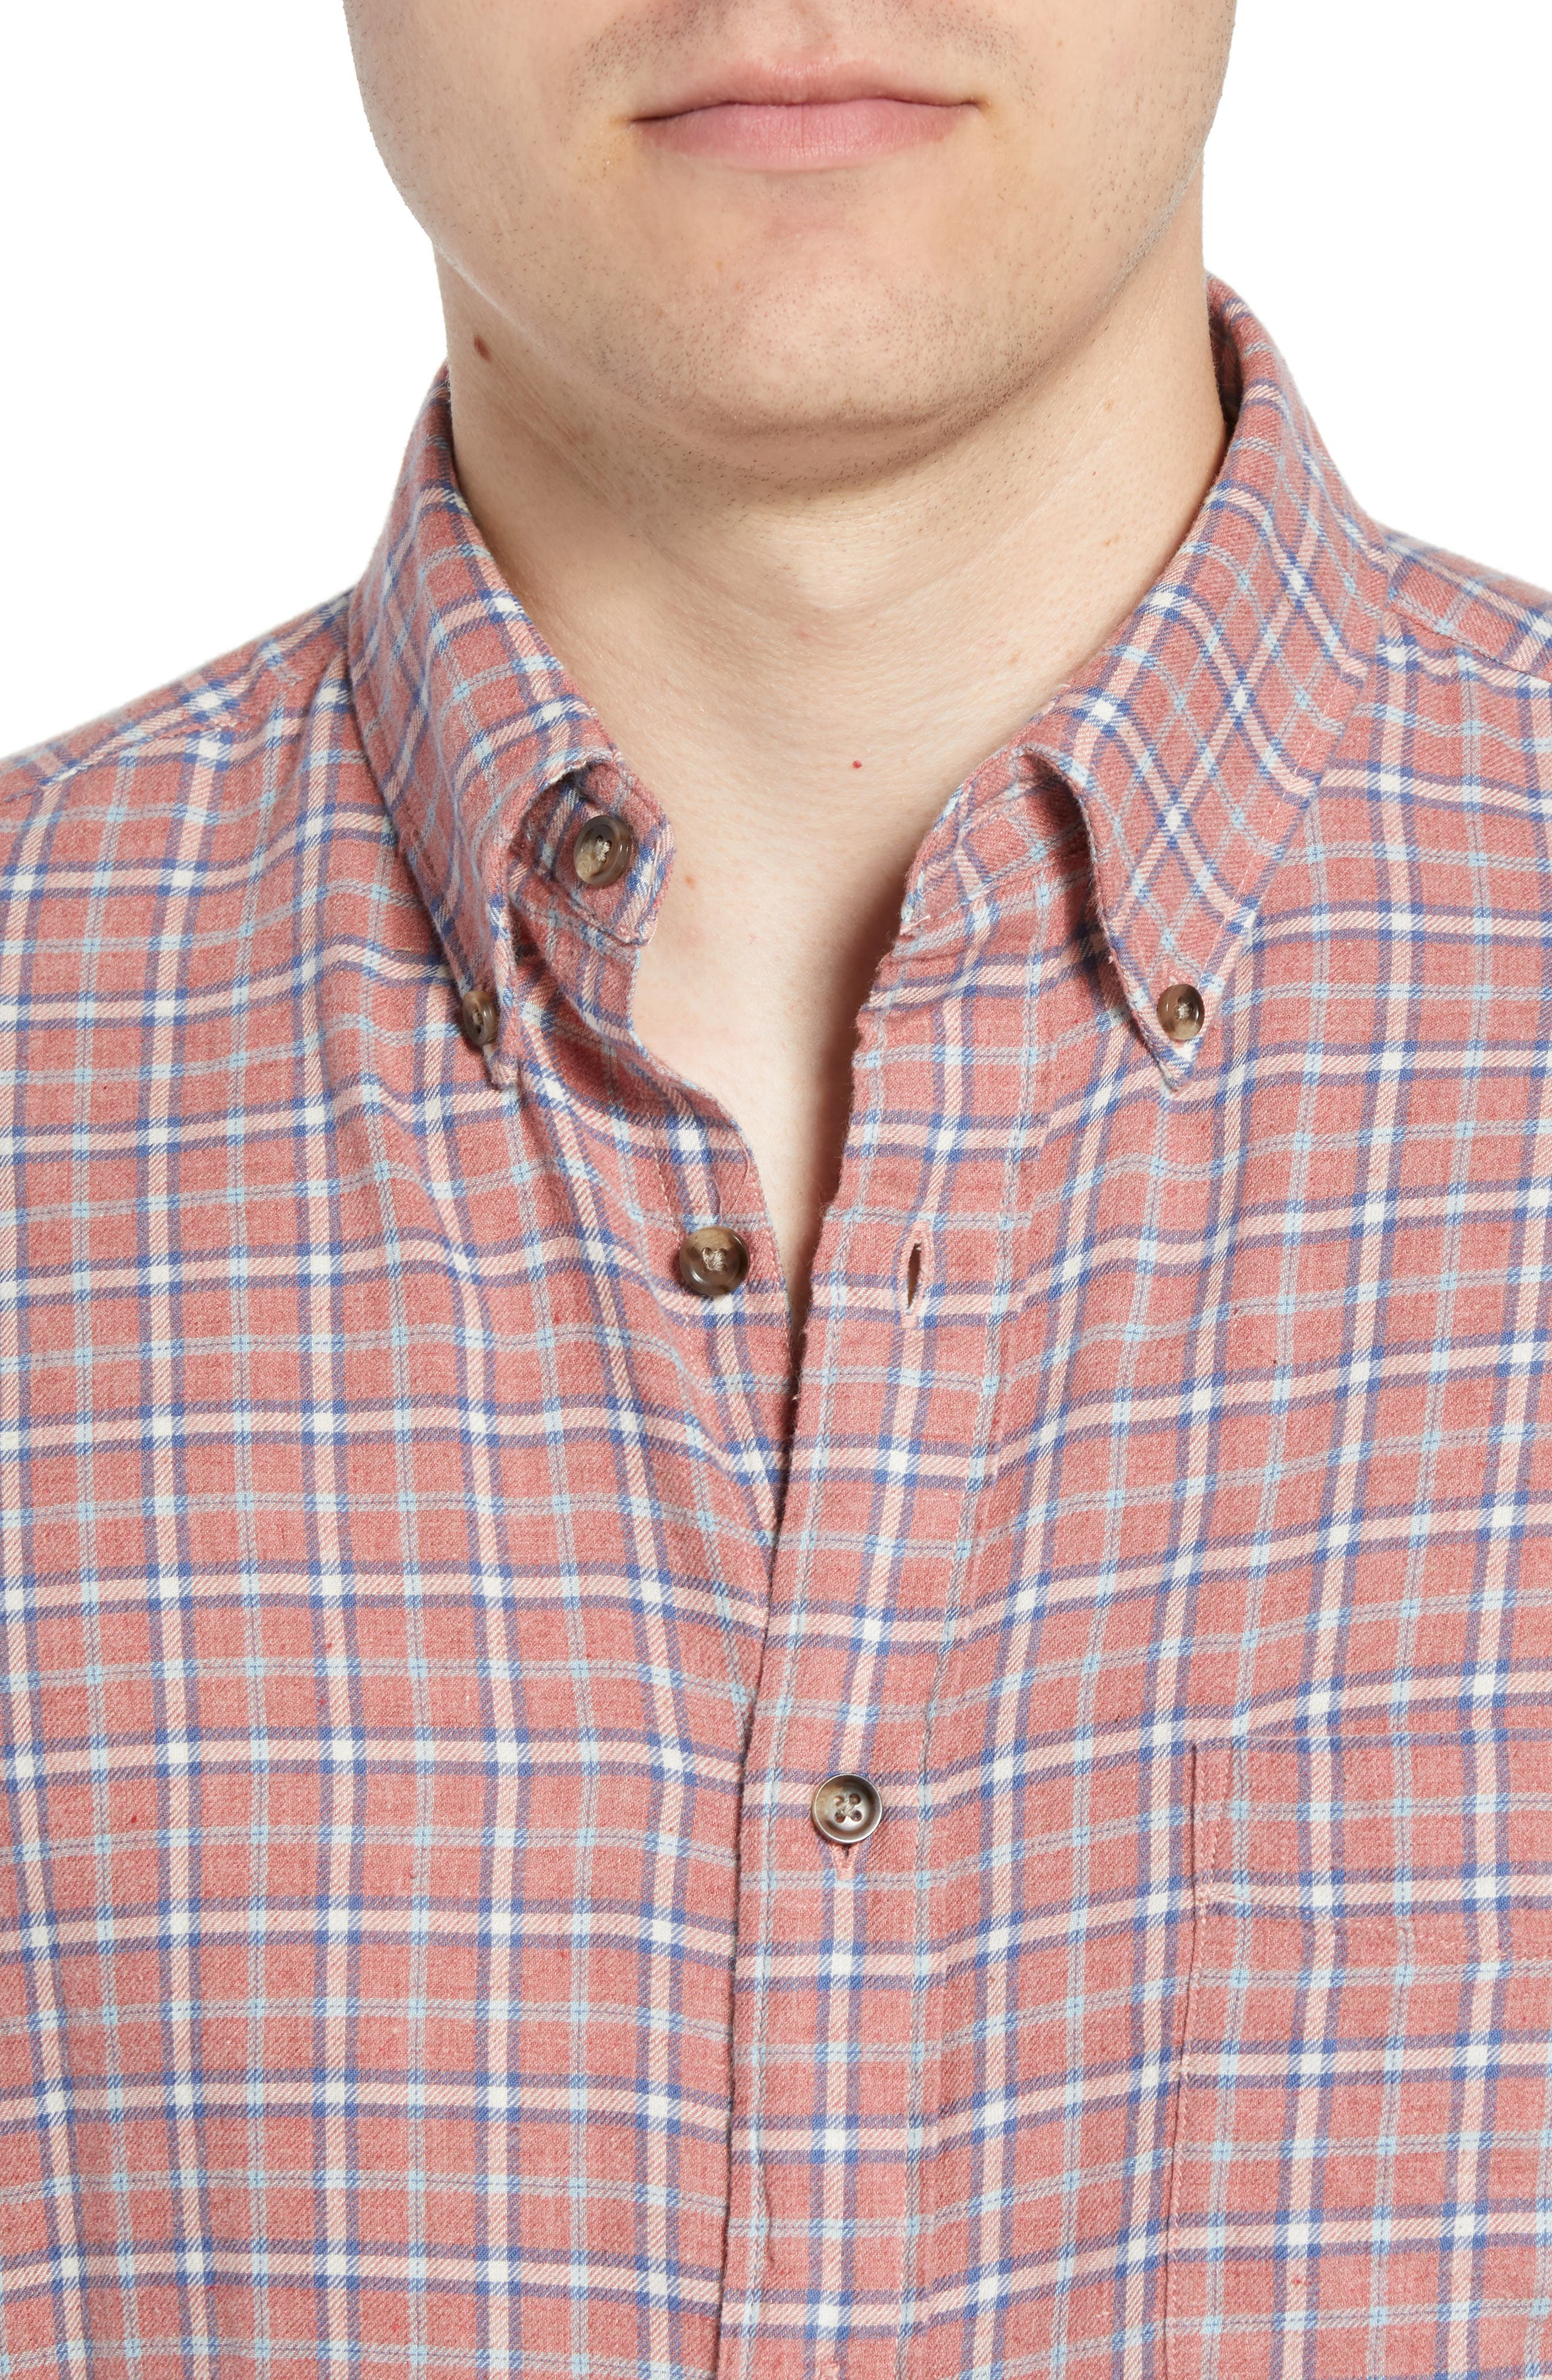 Pacific Check Organic Cotton Sport Shirt,                             Alternate thumbnail 2, color,                             HEATHER RED MULTI